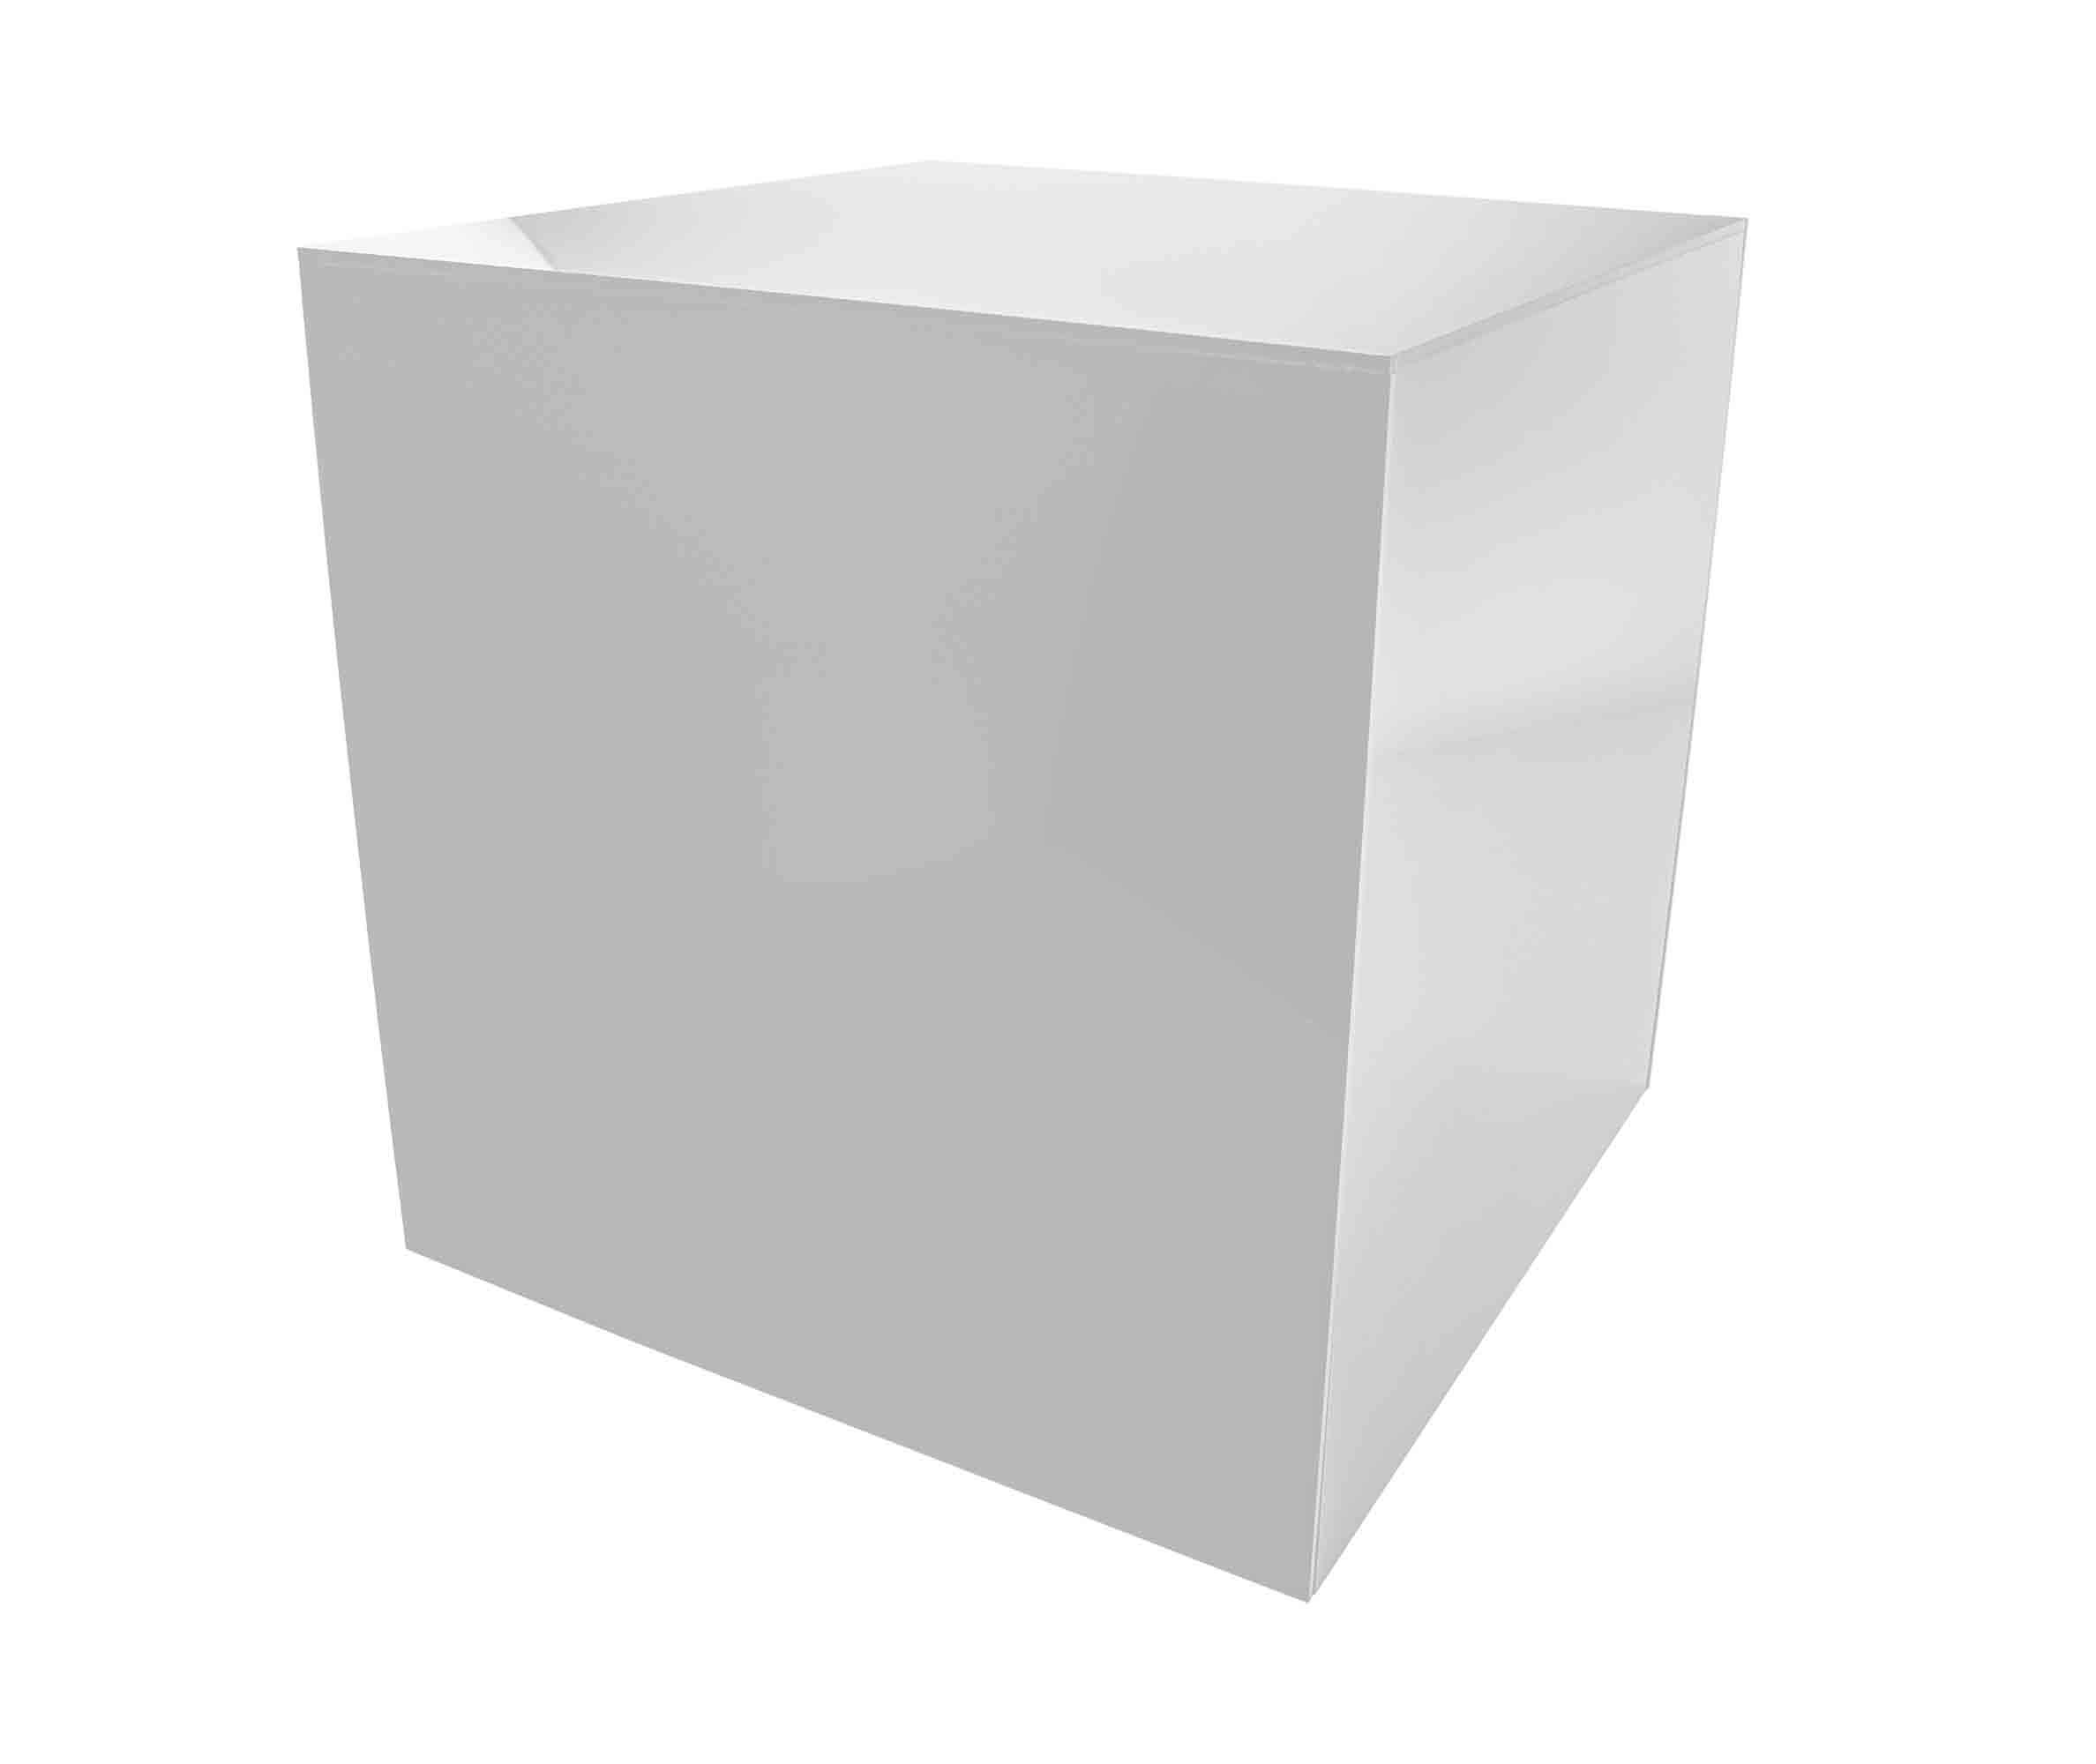 Marketing Holders Acrylic Jewelry Display Box Cube Toys Trinkets Collectible Items Safety Dust Cover Square 5 Sided Show Case Art Easel Pedestal Display 14''w x 14''h x 14''d White Pack of 1 by Marketing Holders (Image #1)